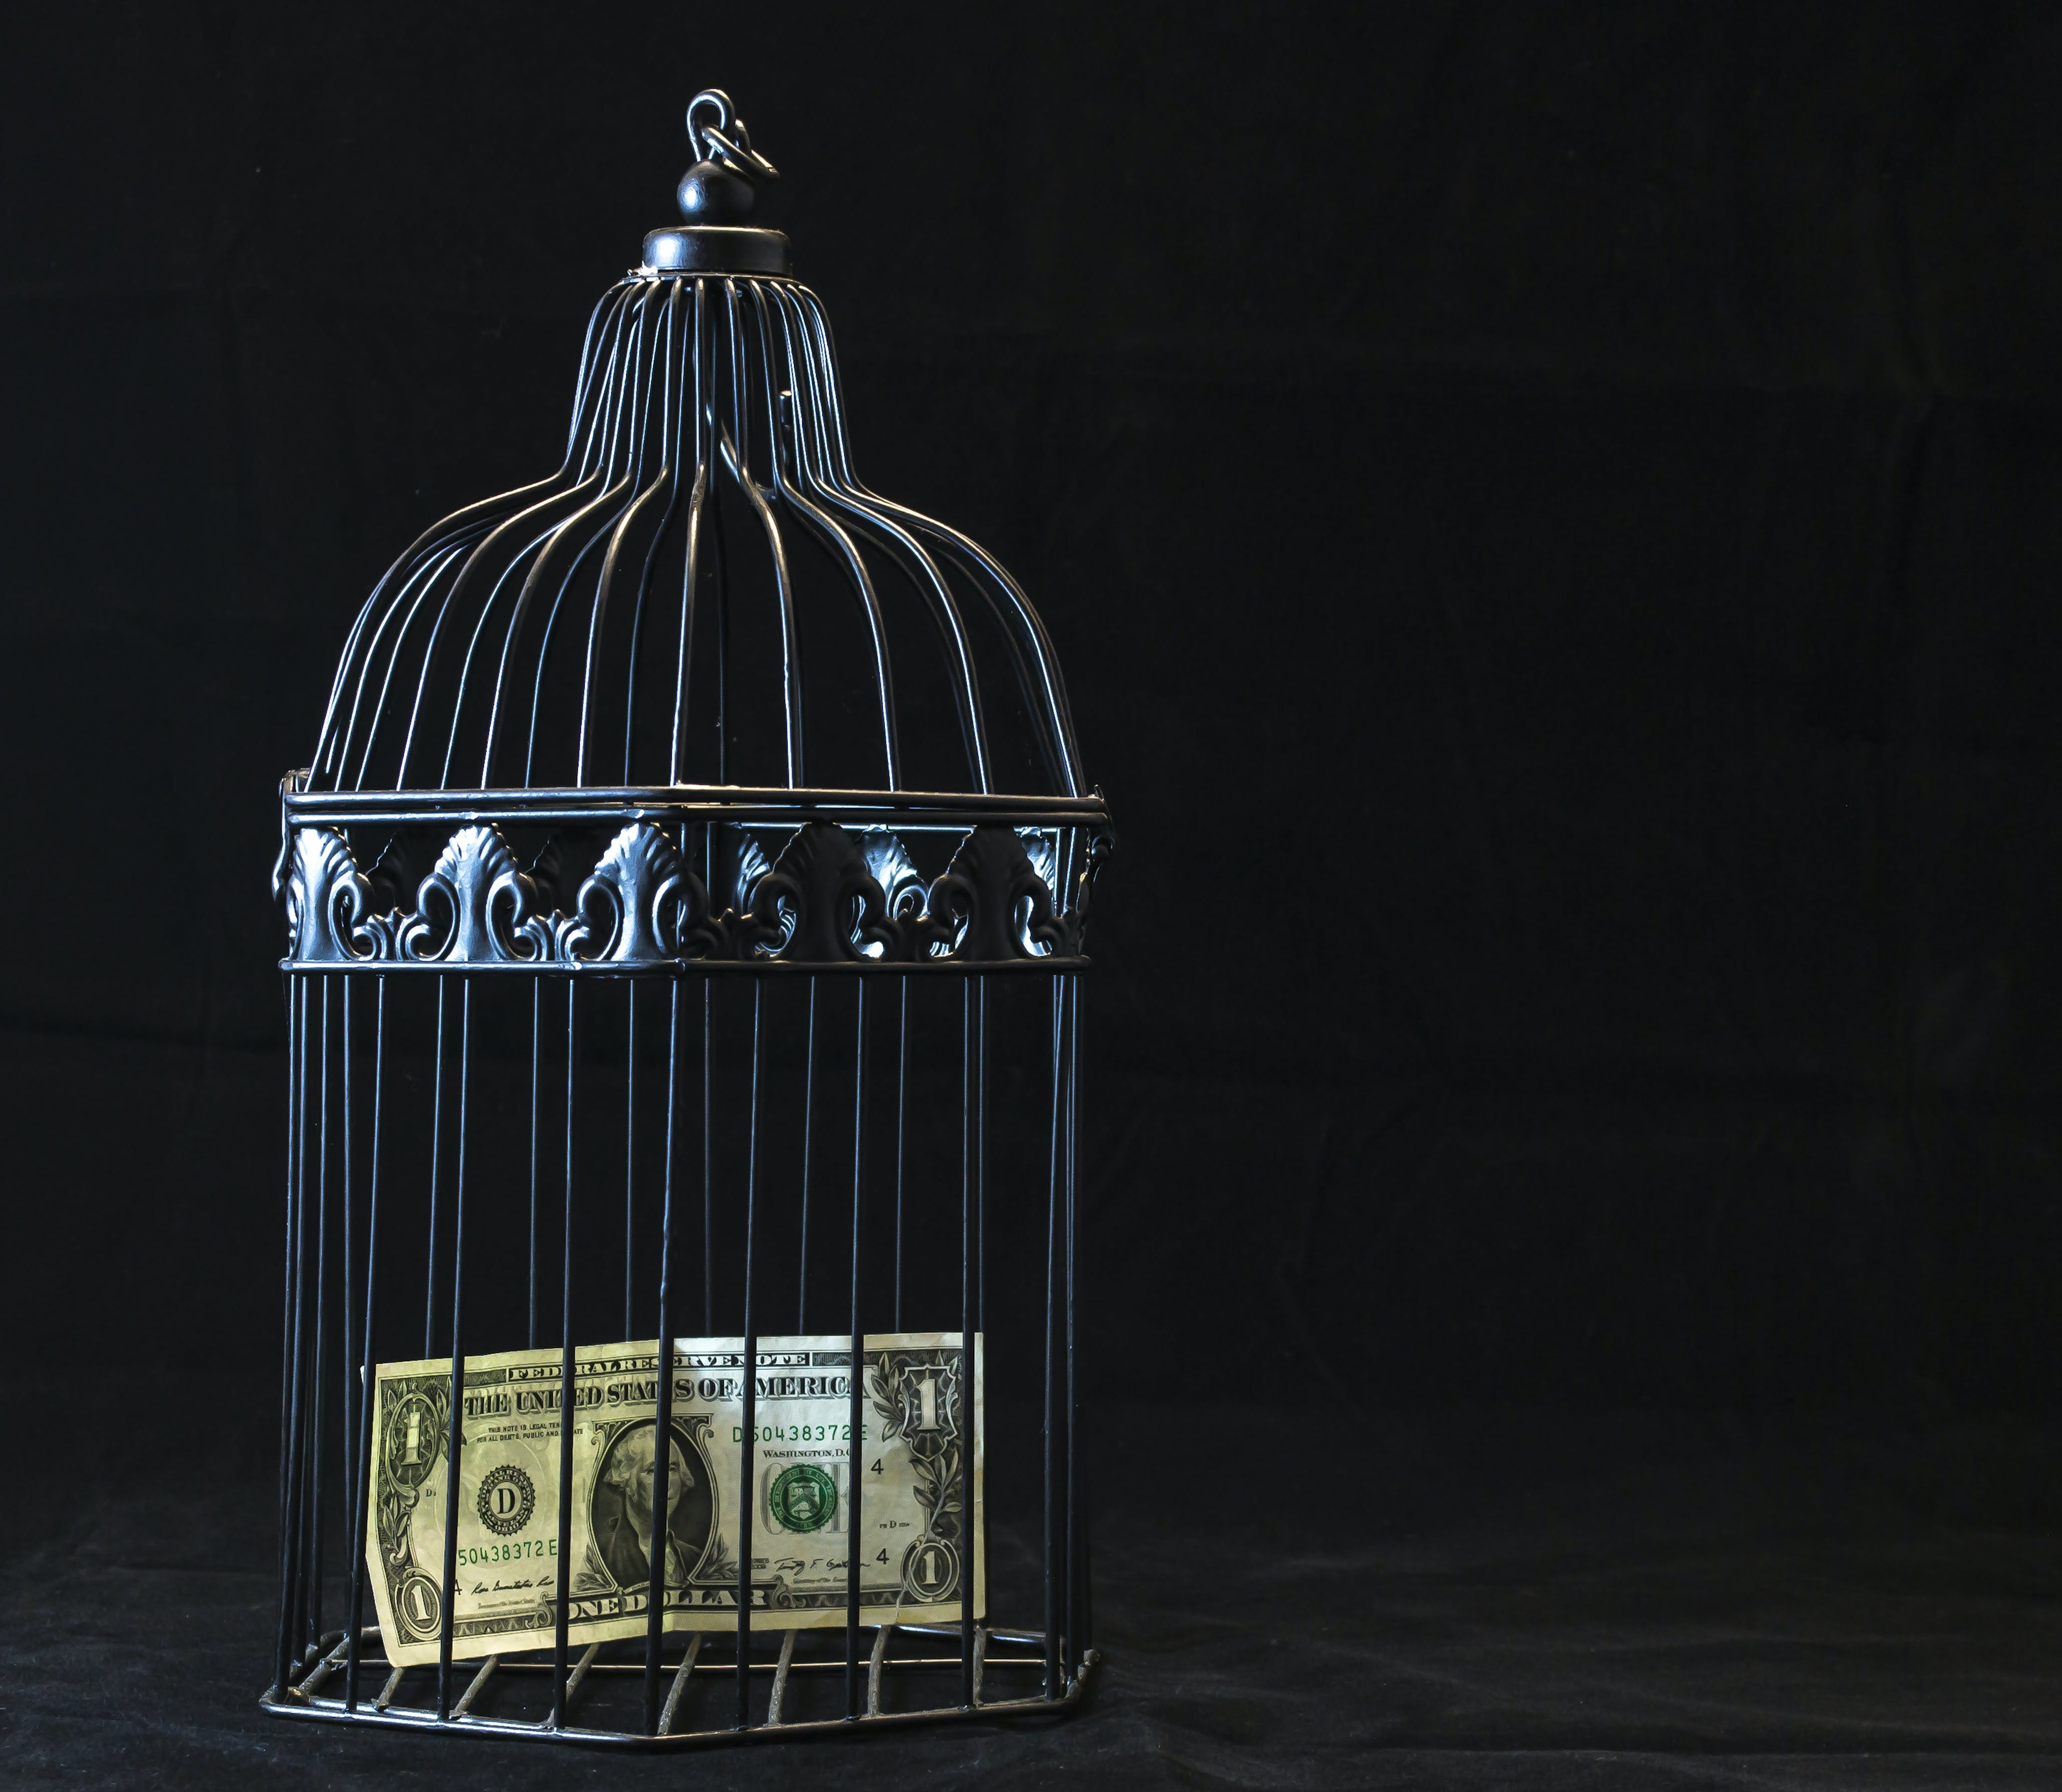 Black Steel Pet Cage With One Dollar